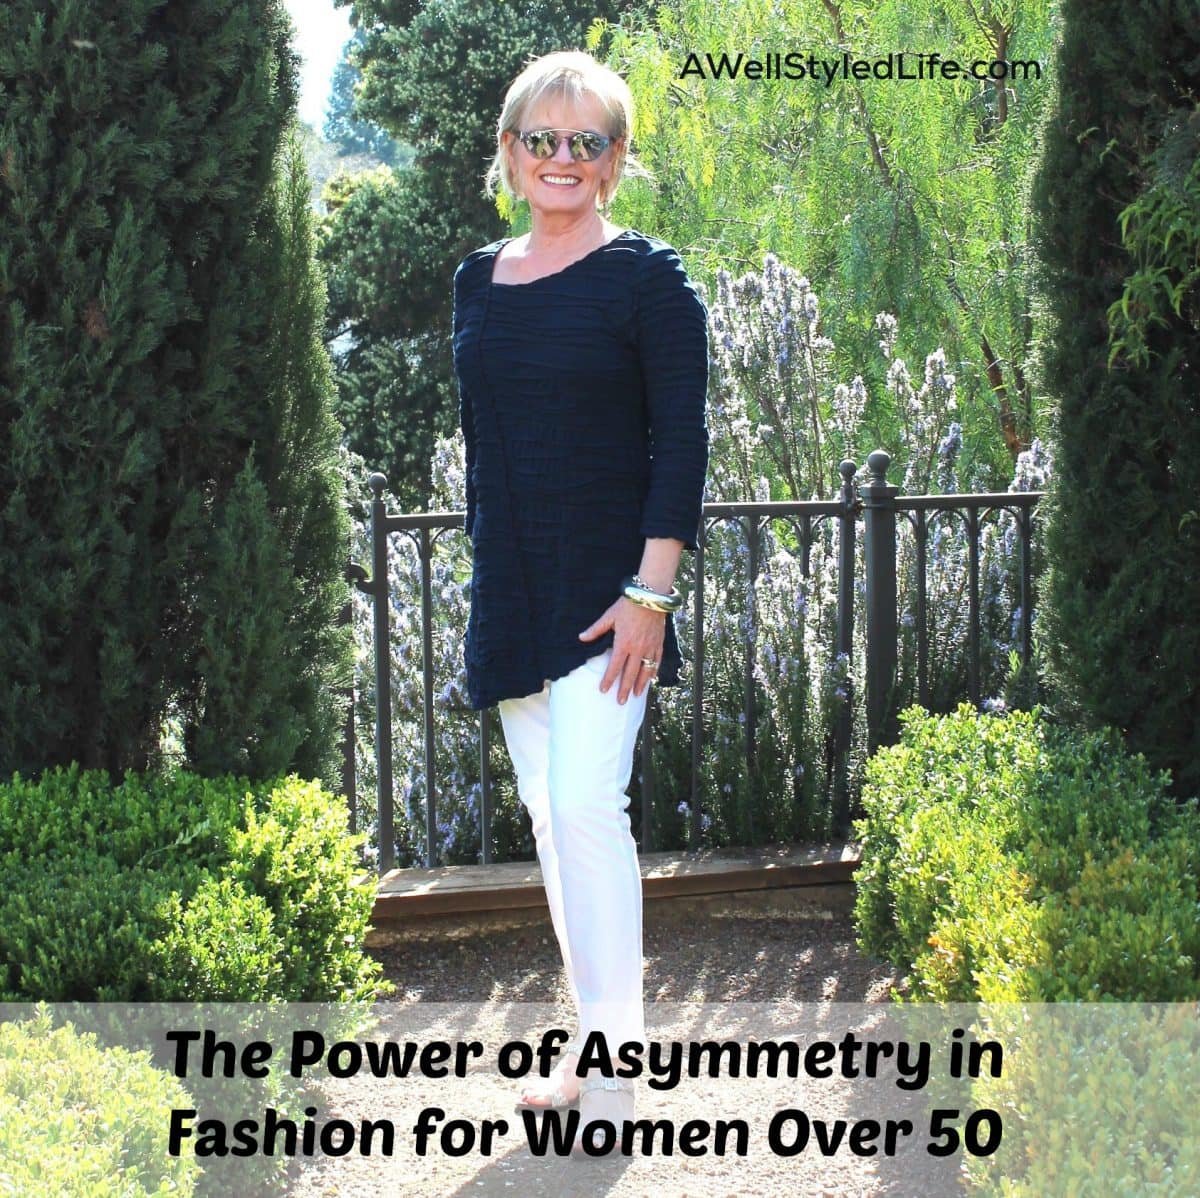 The Power of Asymmetry in Fashion for Woman Over 50